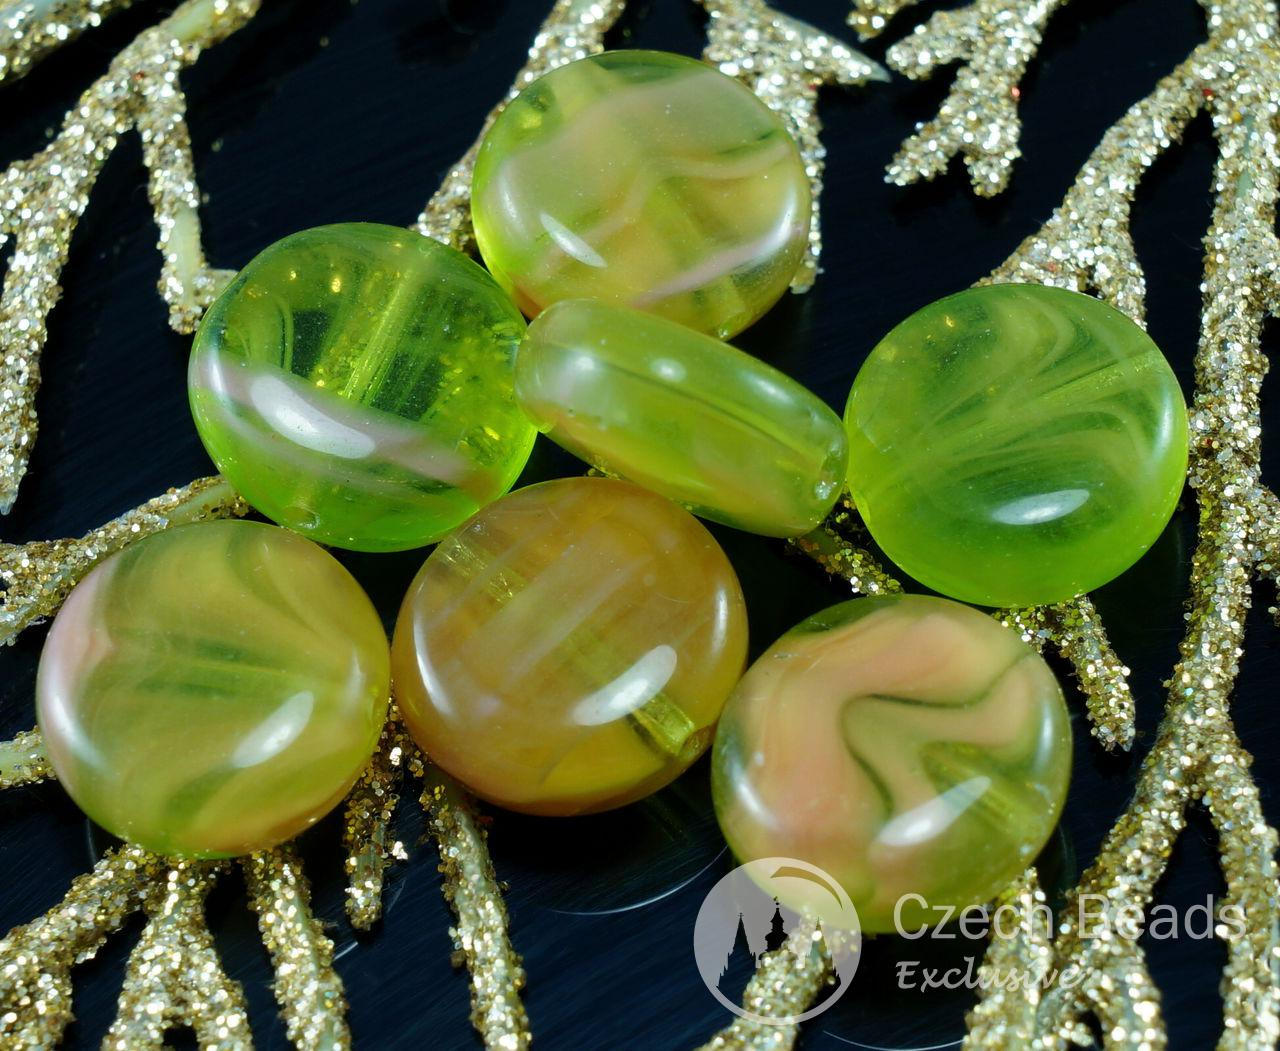 Picasso Green Crystal Czech Glass Flat Round Coin Beads Tablet Shape 12mm 16pcs for $2.31 from Czech Beads Exclusive